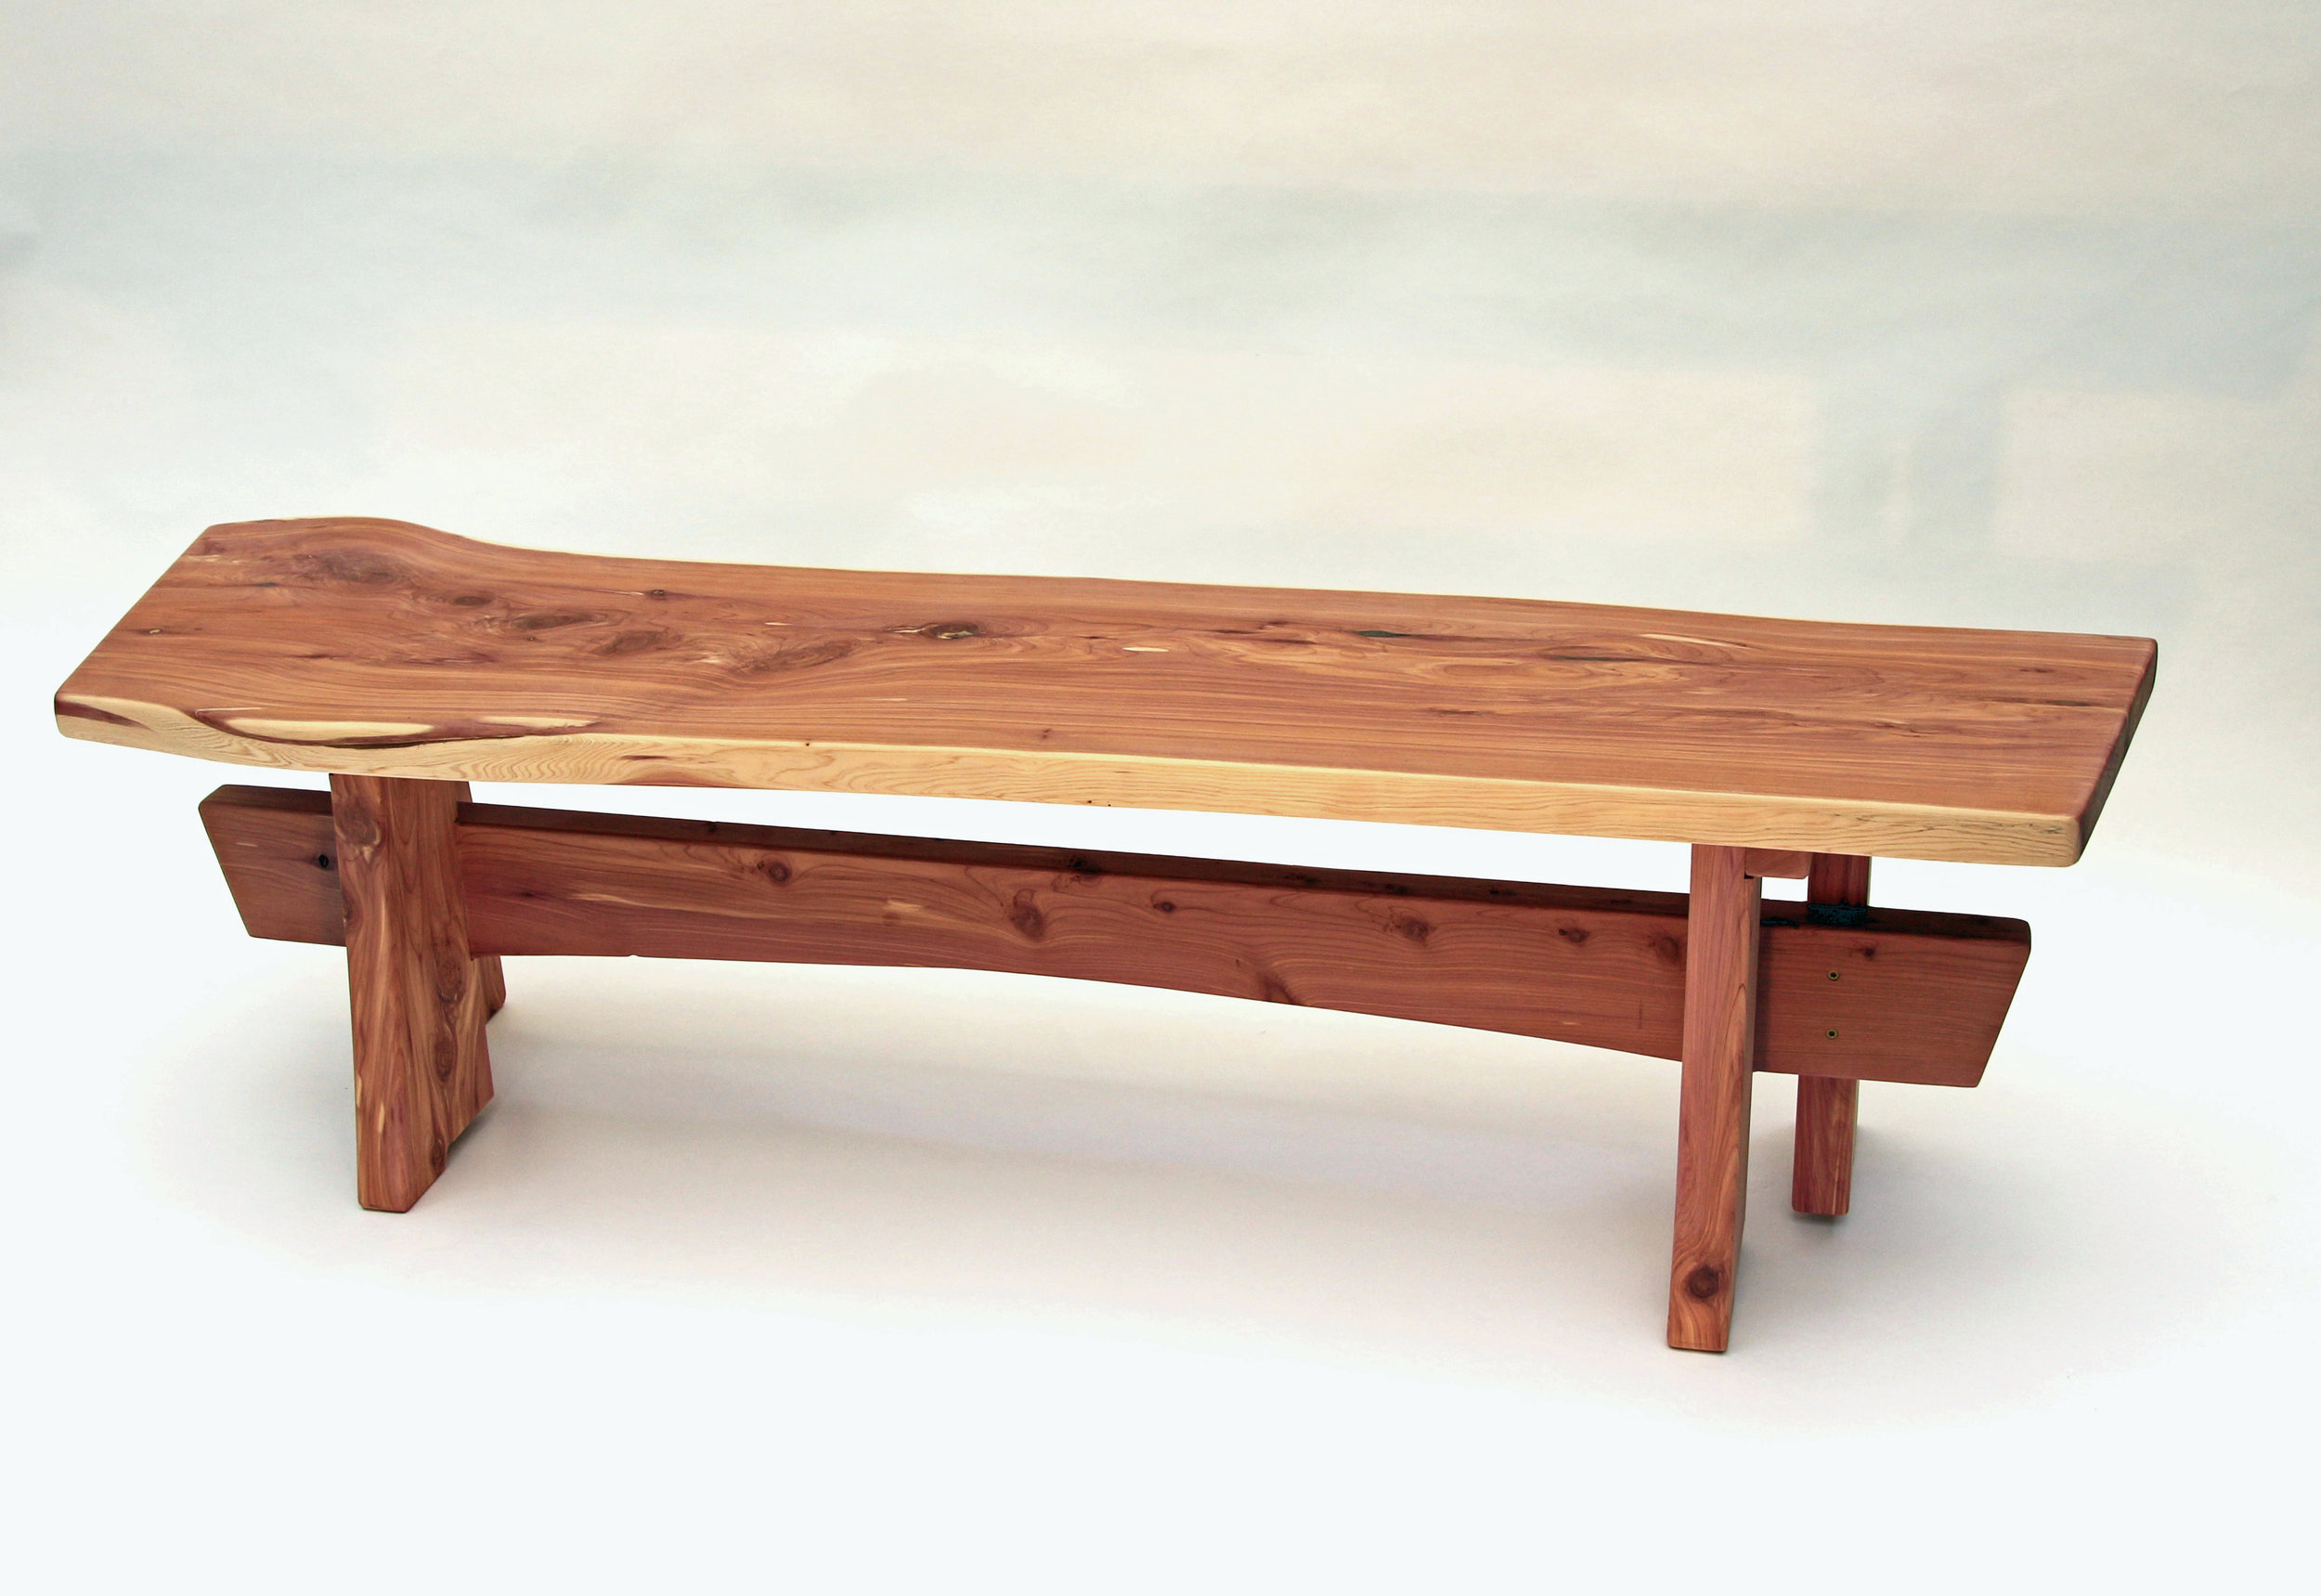 Unfinished Cedar Benches - Left unfinished, the cedar wood ages slowly -- the original reds shifting over time to browns and finally soft grays.